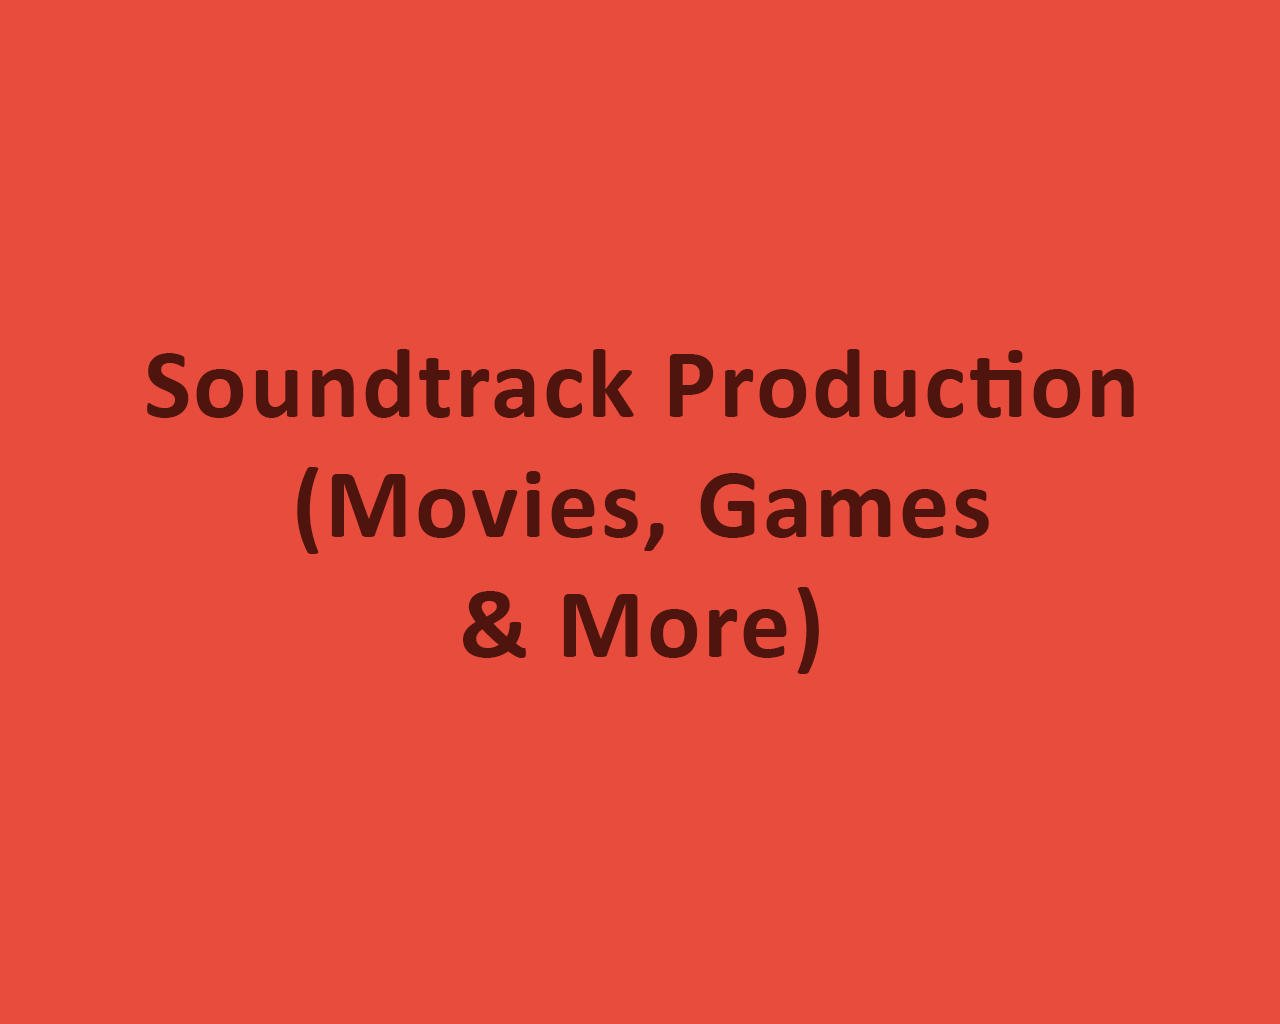 Soundtrack Production (Movies, Games & More) by odiusfly - 105981